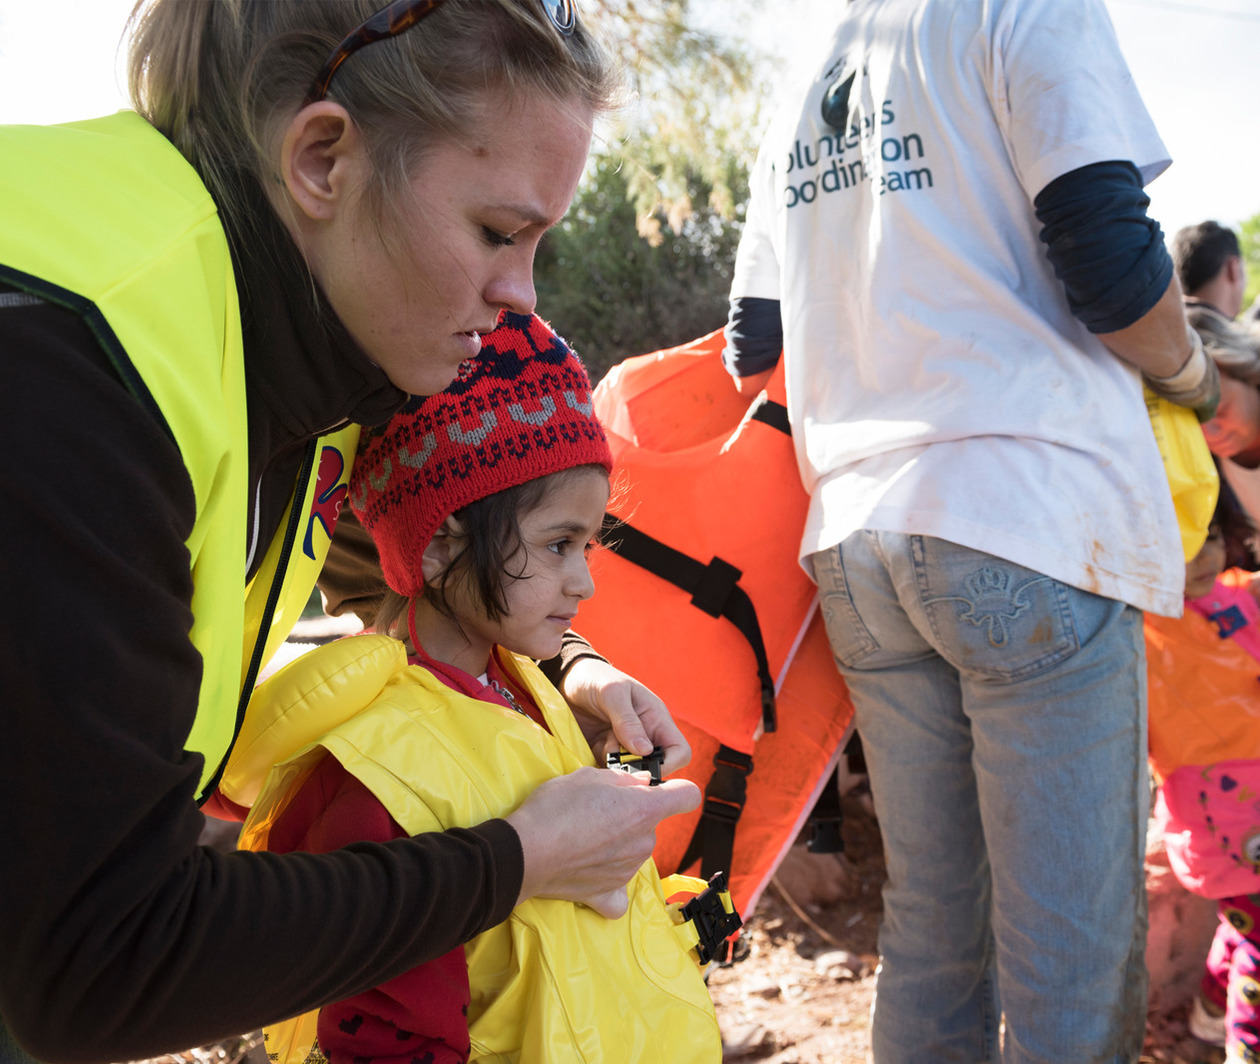 Working Supportively With Refugees: Principles, Skills and Perspectives